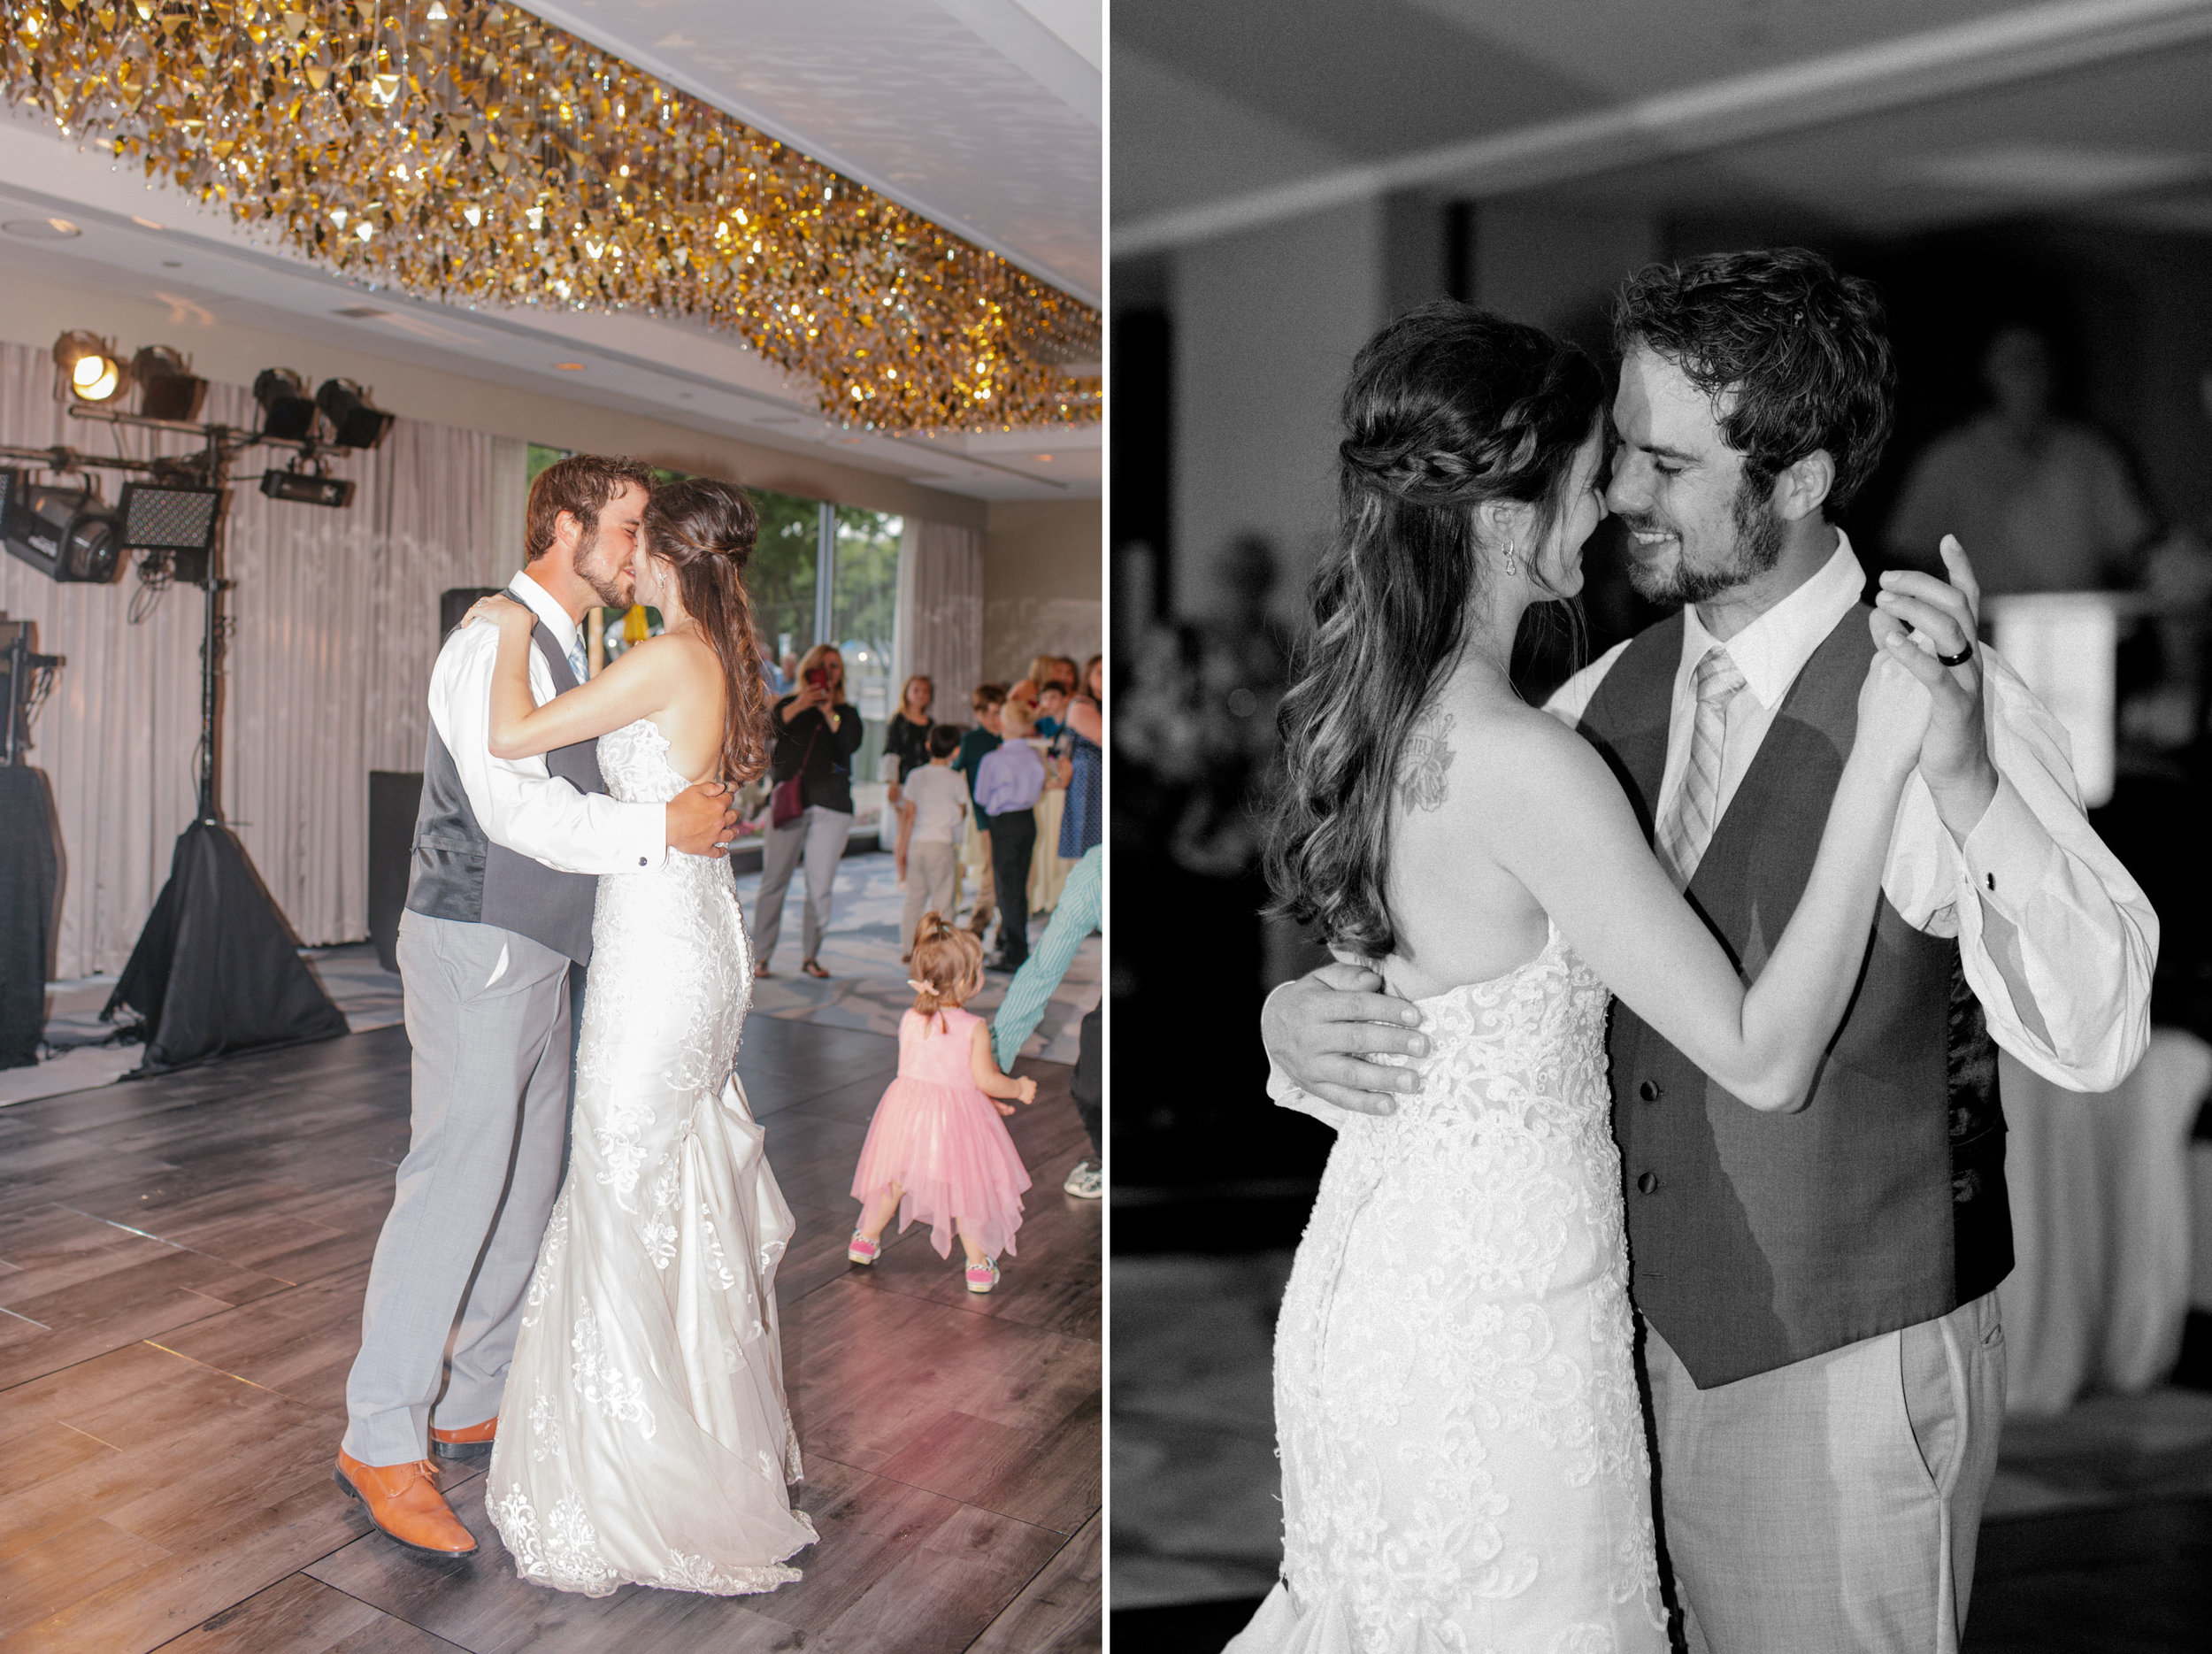 first dance to Tim McGraw love song at wedding in Iowa